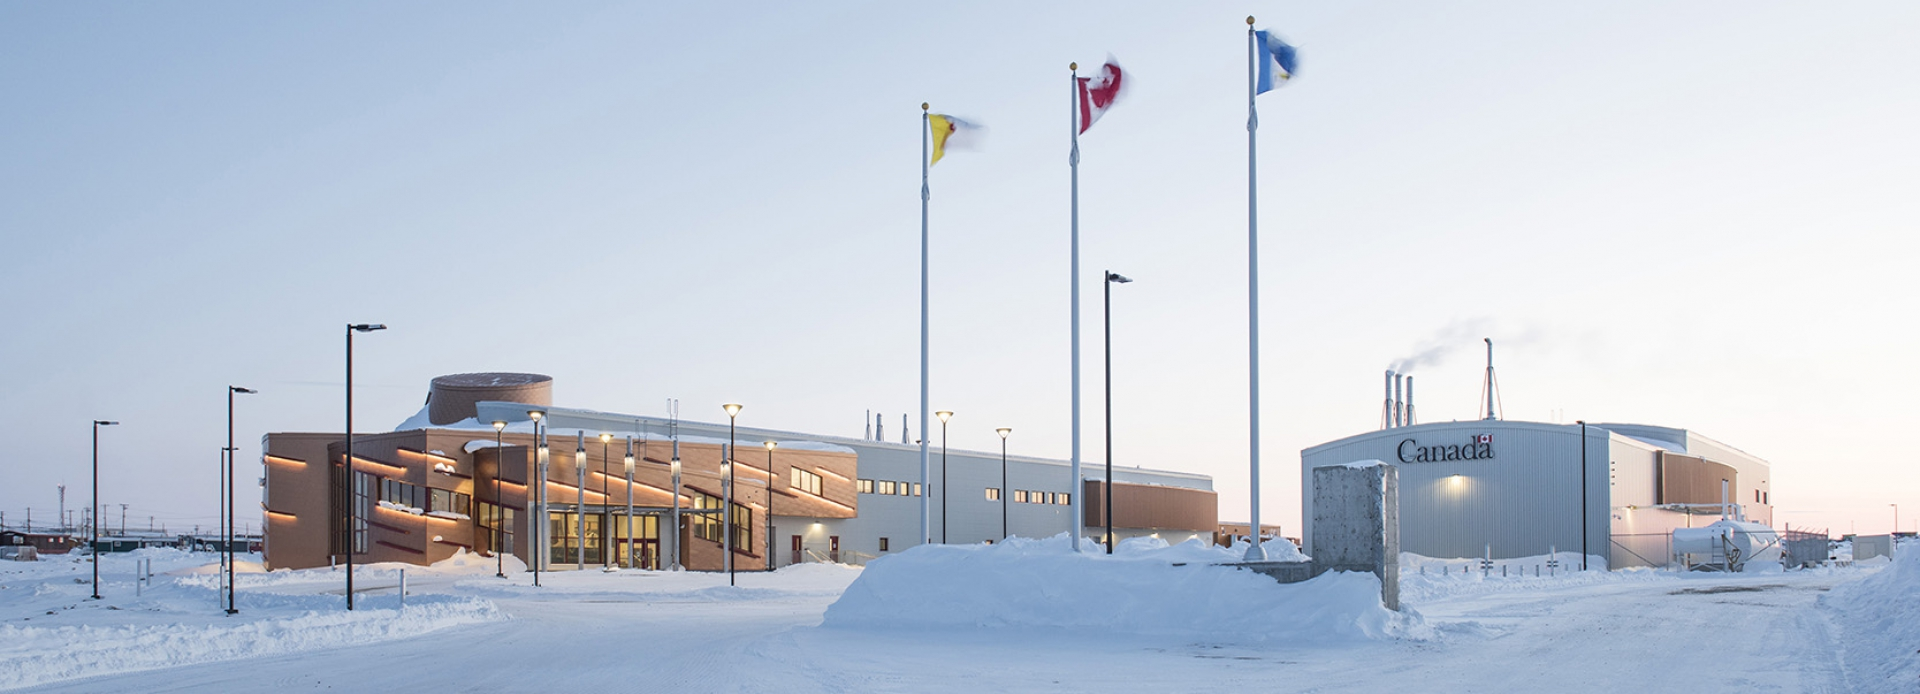 Canadian High Arctic Research Station (CHARS) for Aboriginal Affairs and Northern Development Canada